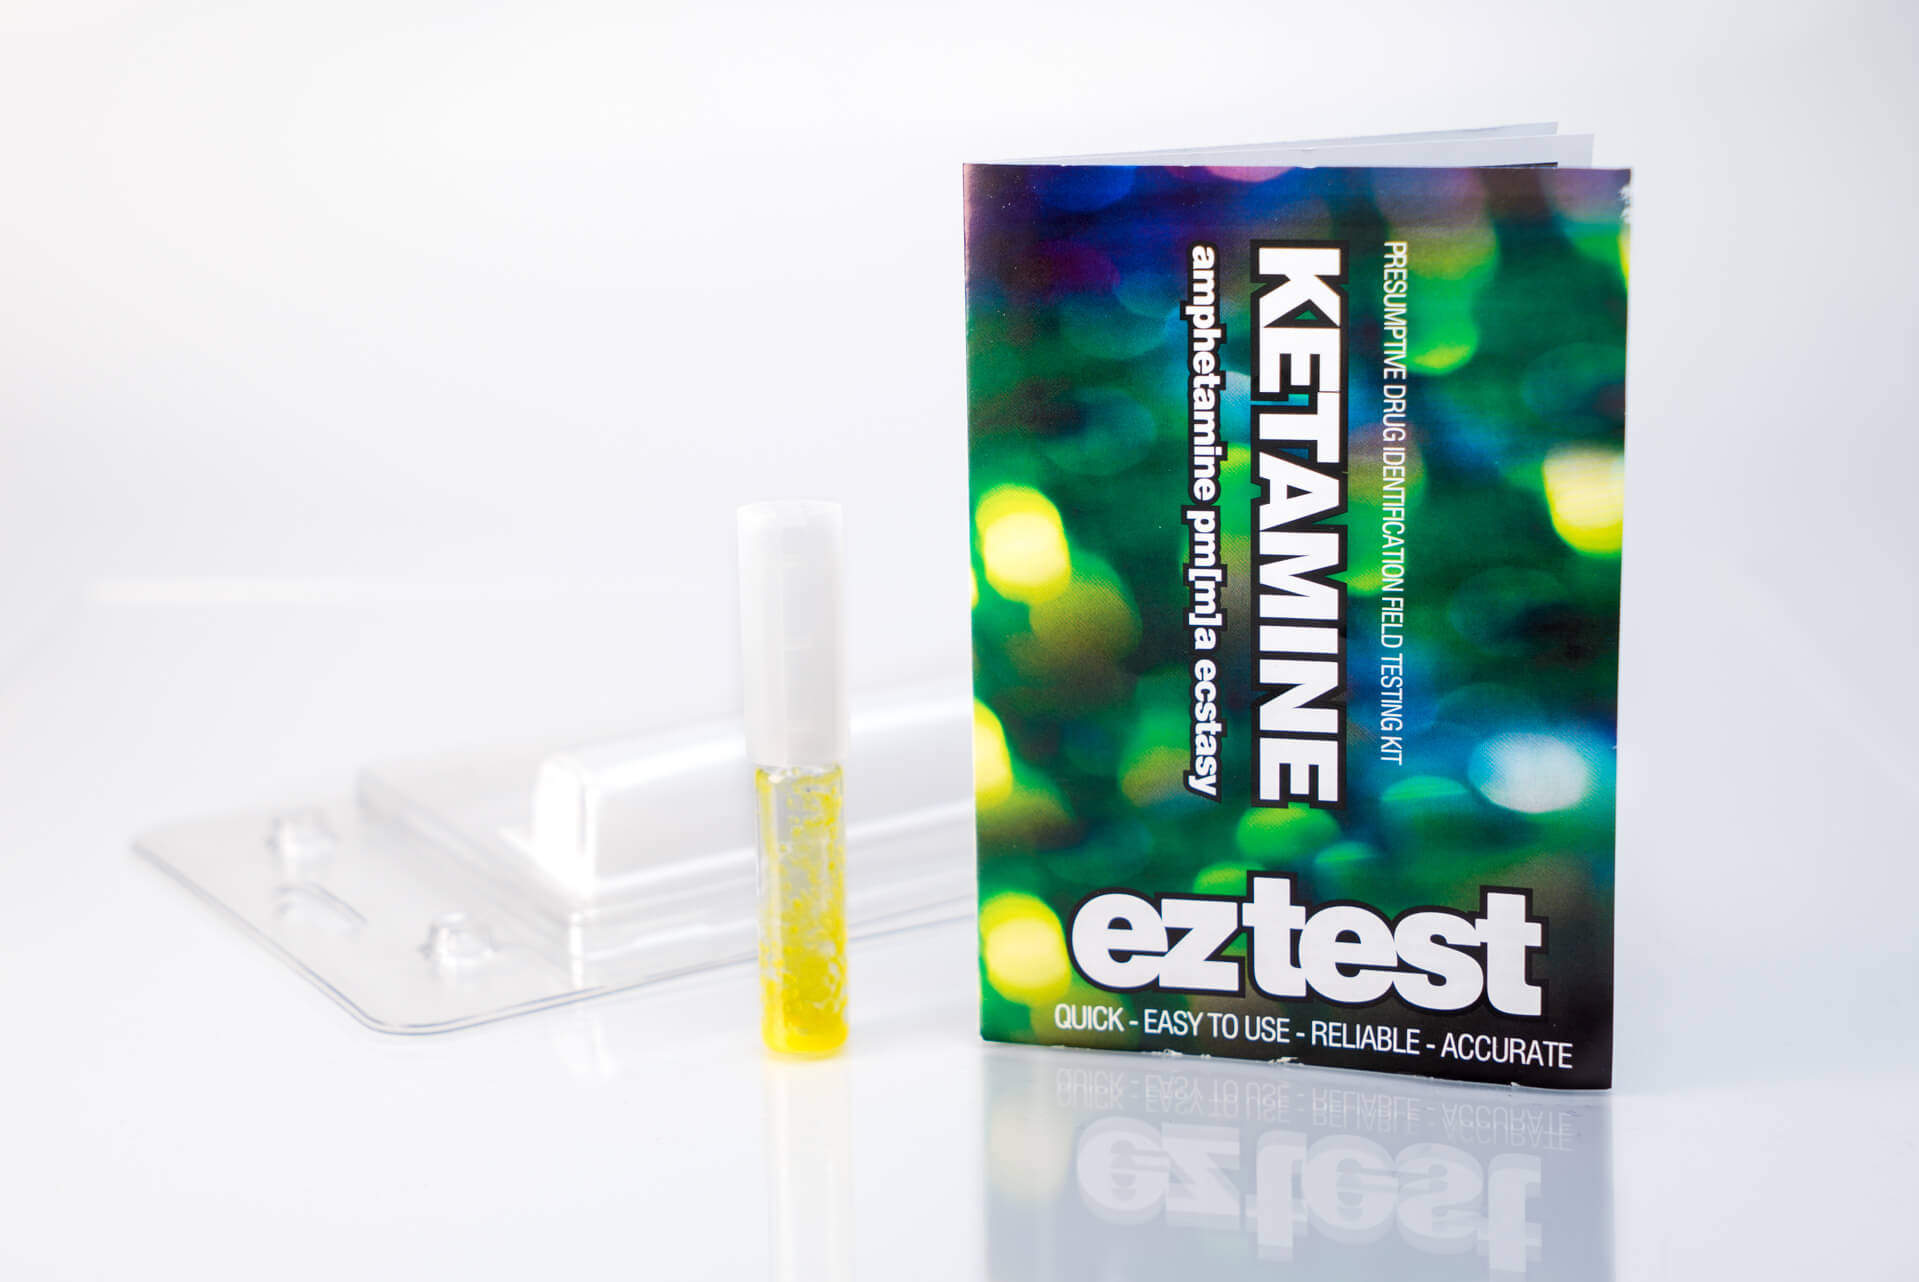 Kit de Test de Ketamine à Usage Unique